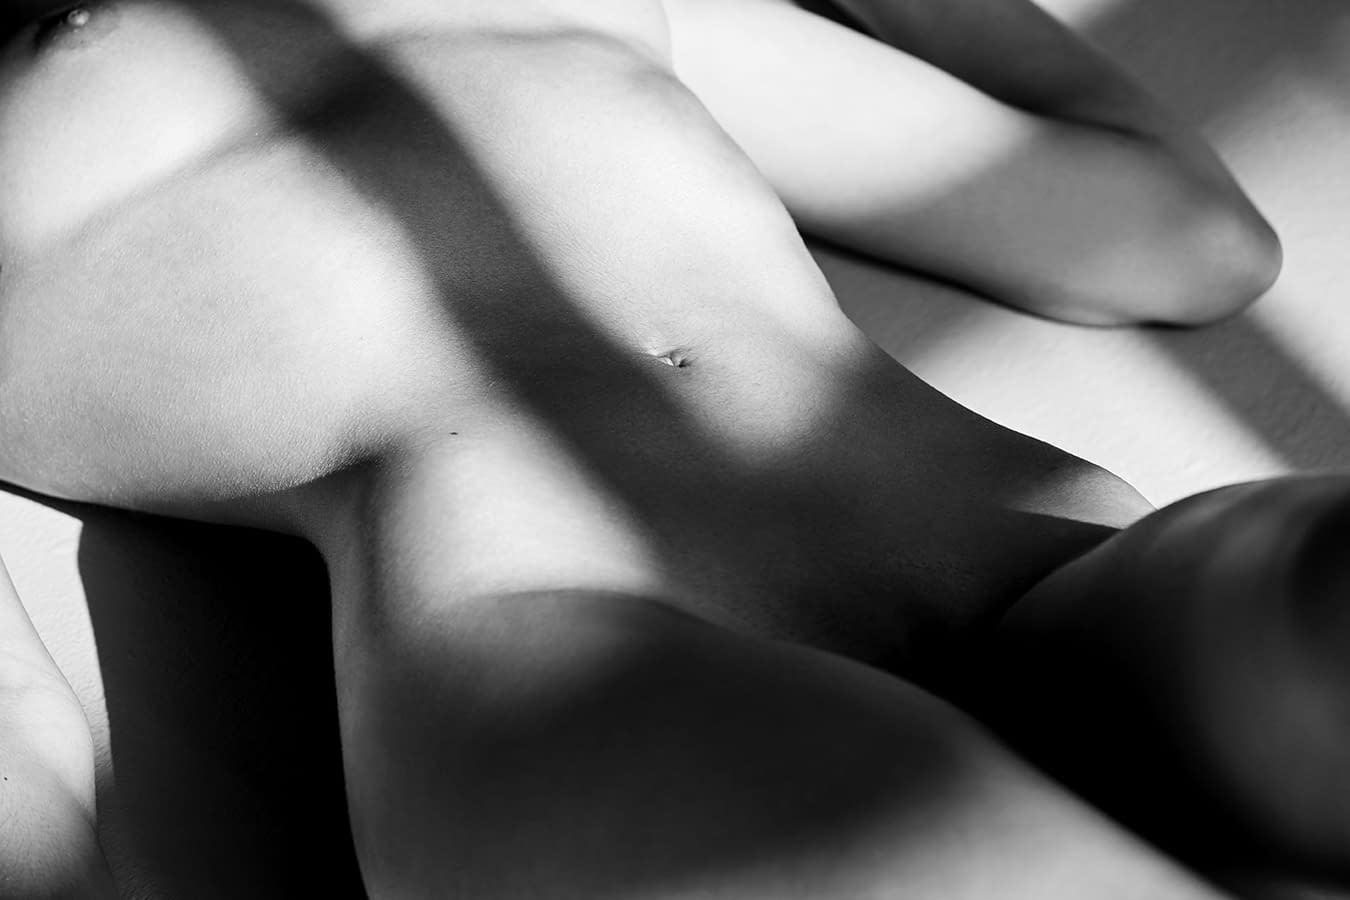 NUDE 7 PHOTO BY ENRIC GALCERAN